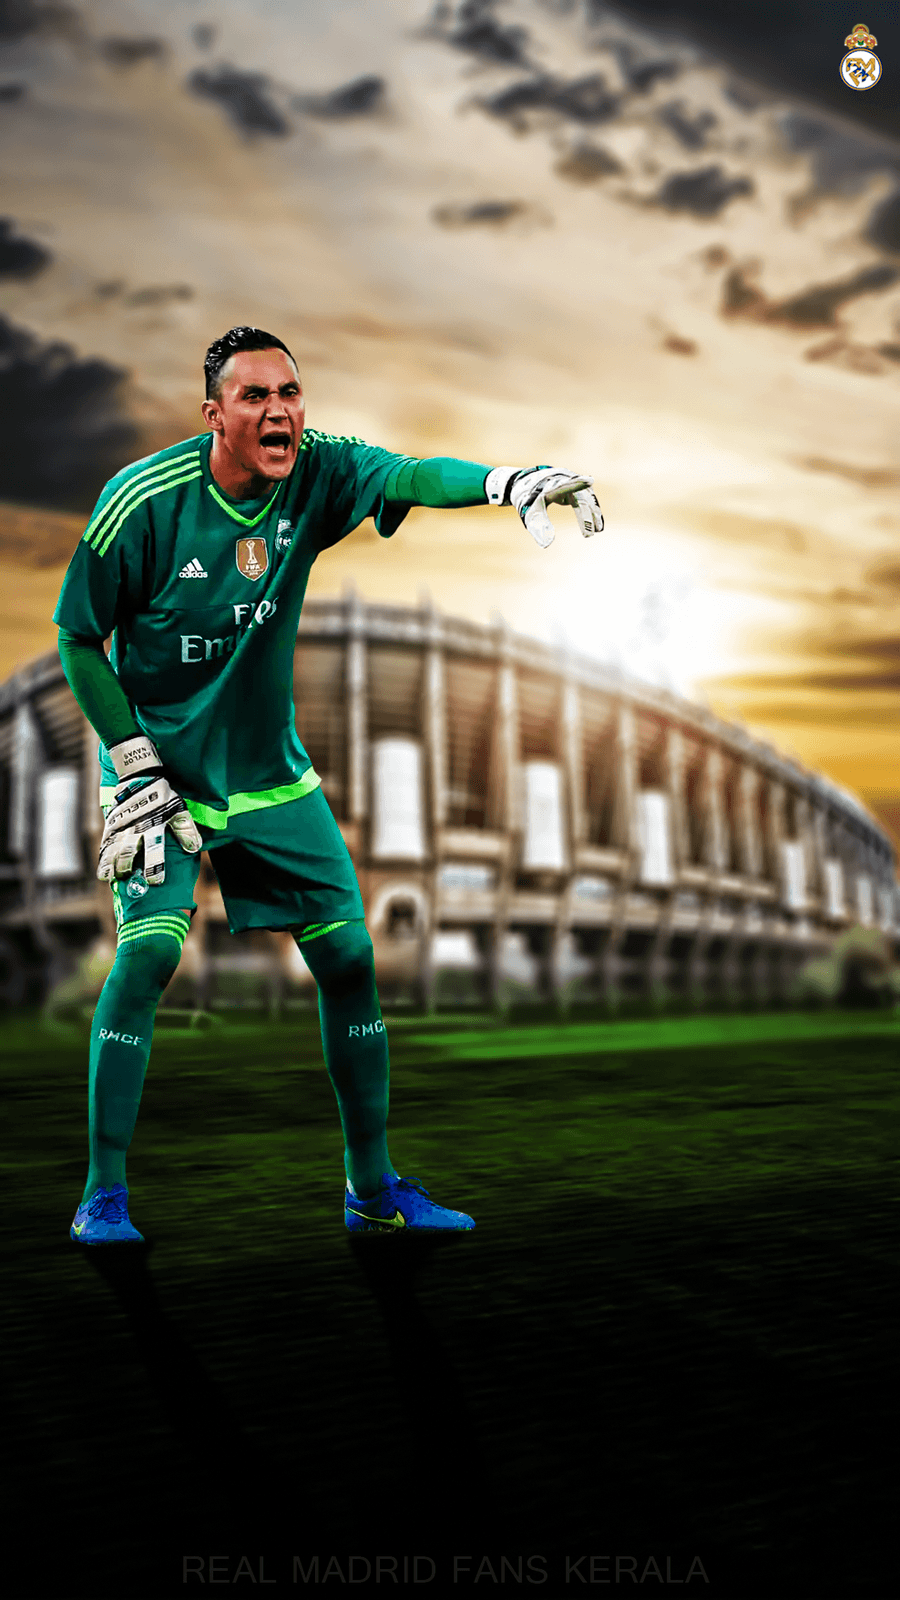 Keylor Navas by ShibilyMV7 on DeviantArt